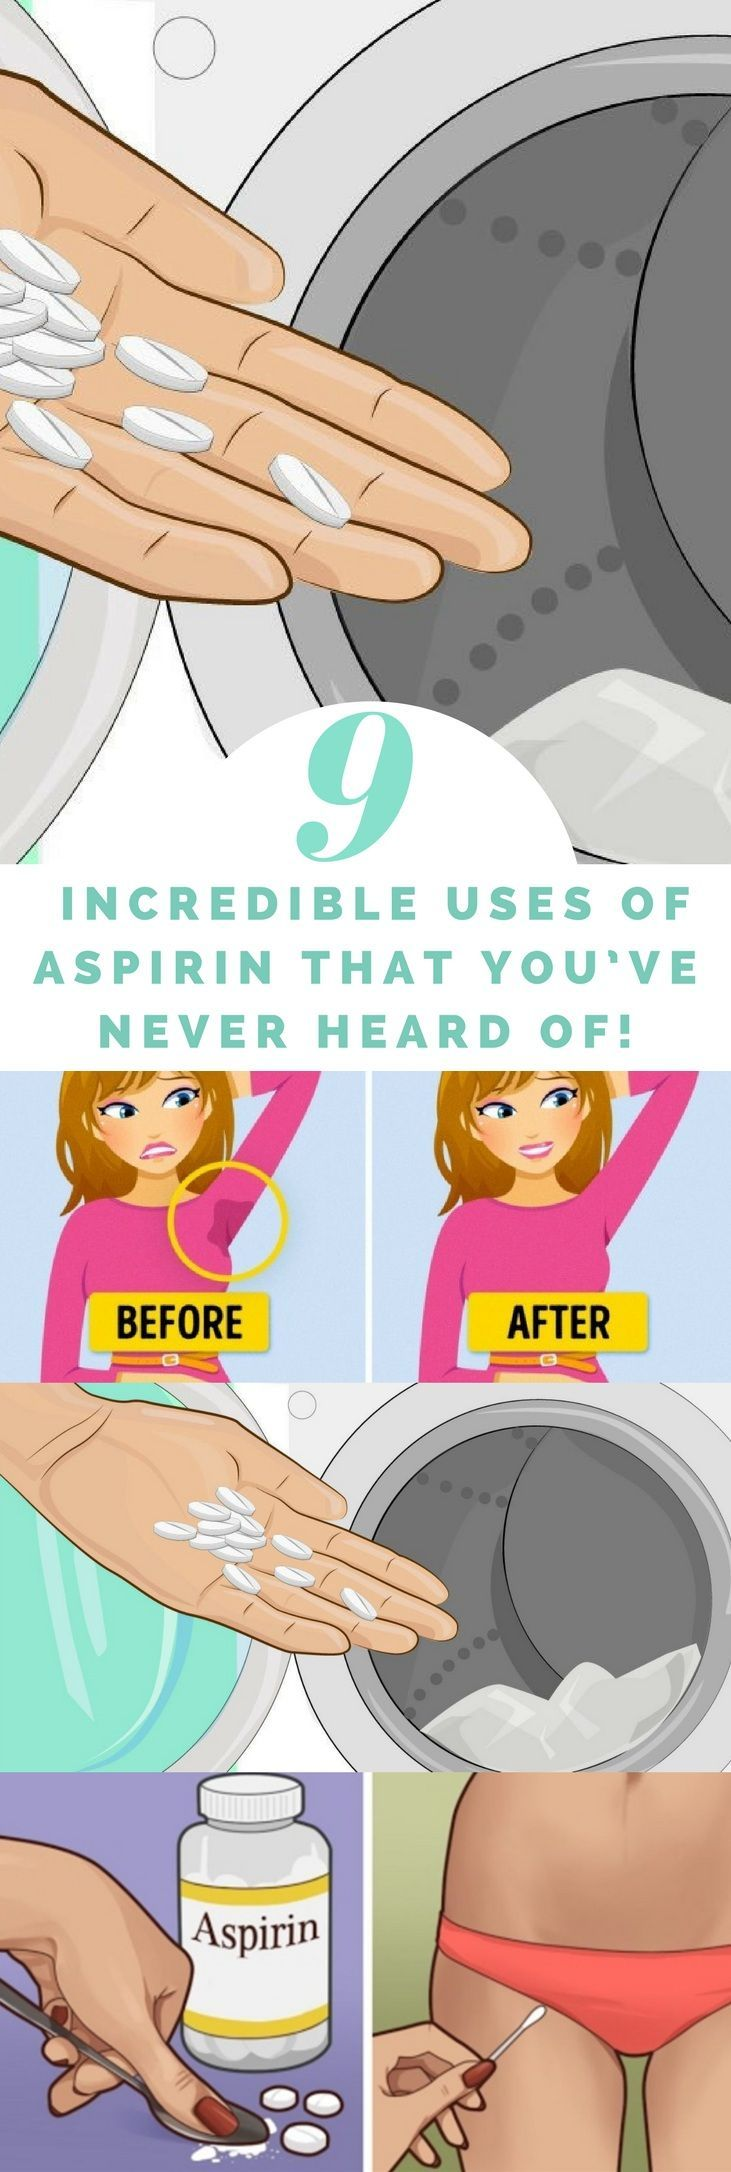 9 Incredible Uses Of Aspirin That You've Never Heard Of! – Girlstale